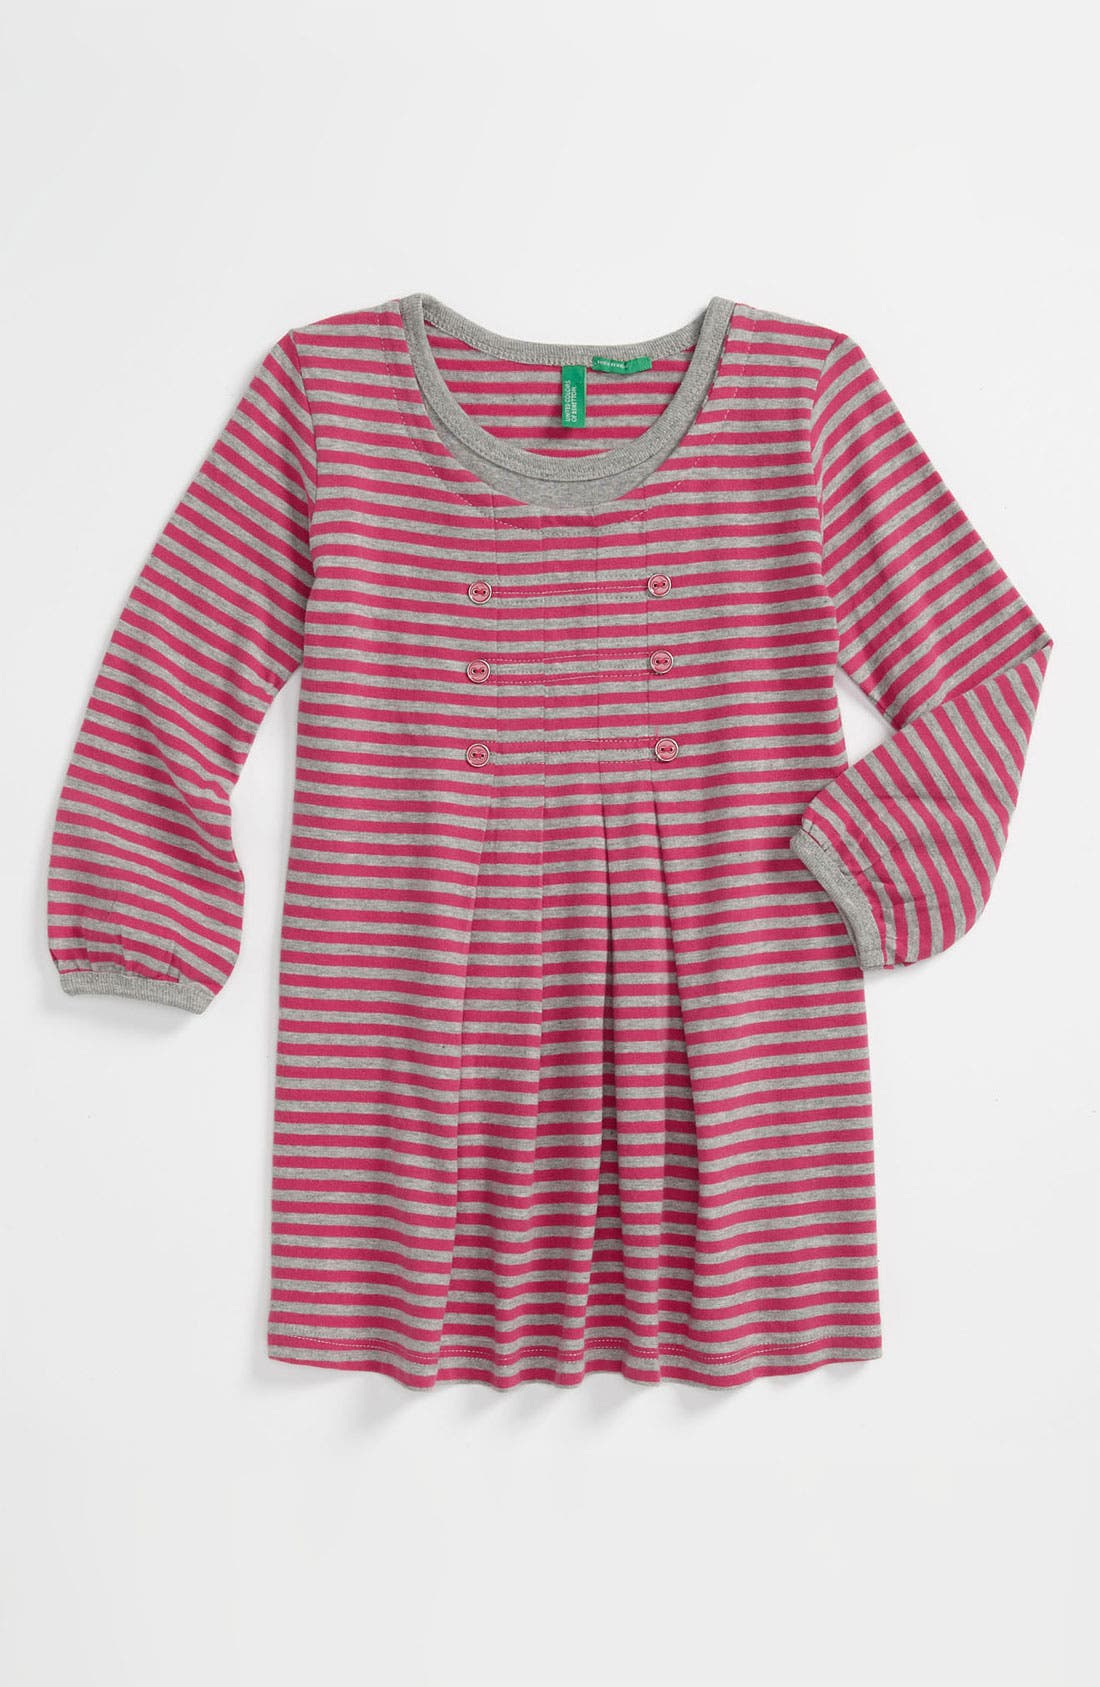 Main Image - United Colors of Benetton Kids Stripe Dress (Infant)